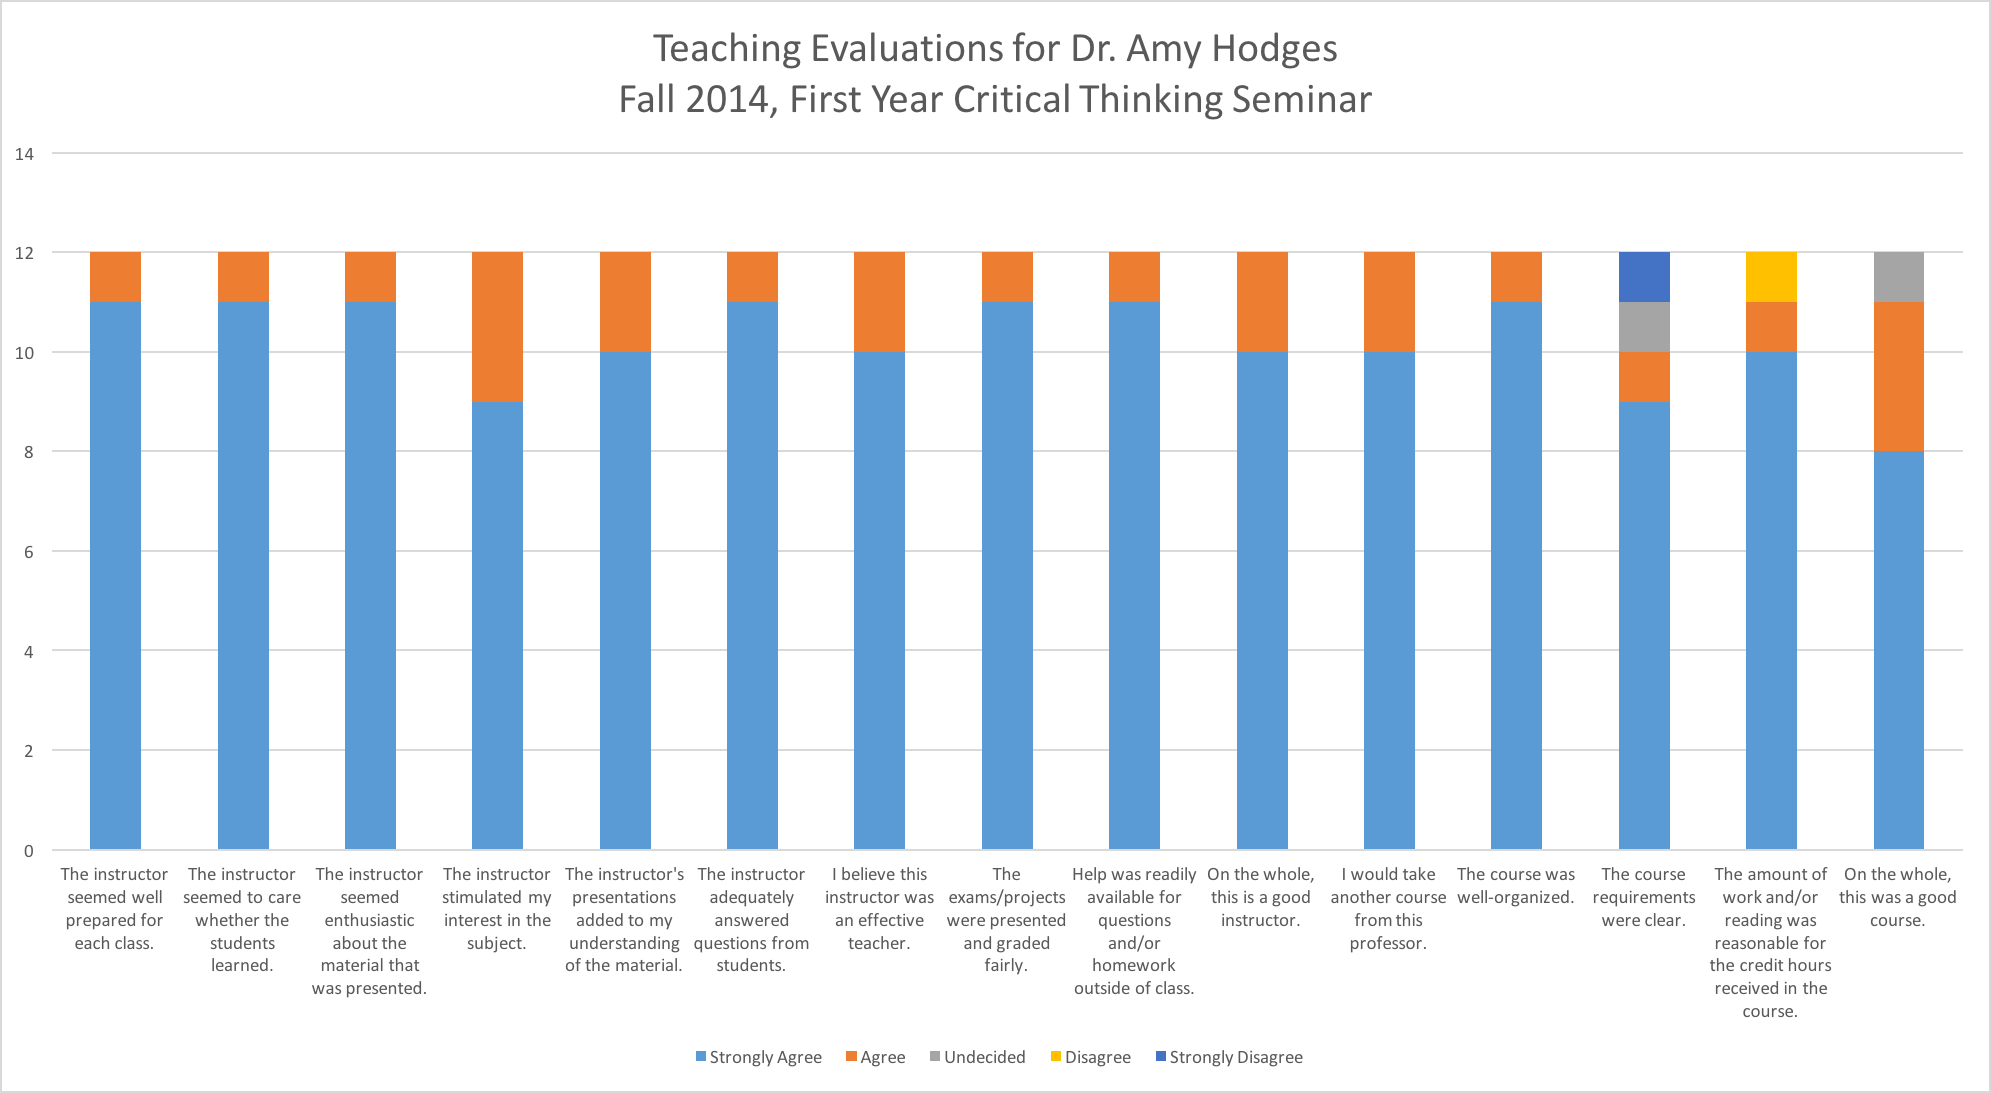 Teaching evaluations graph for first year critical thinking seminar